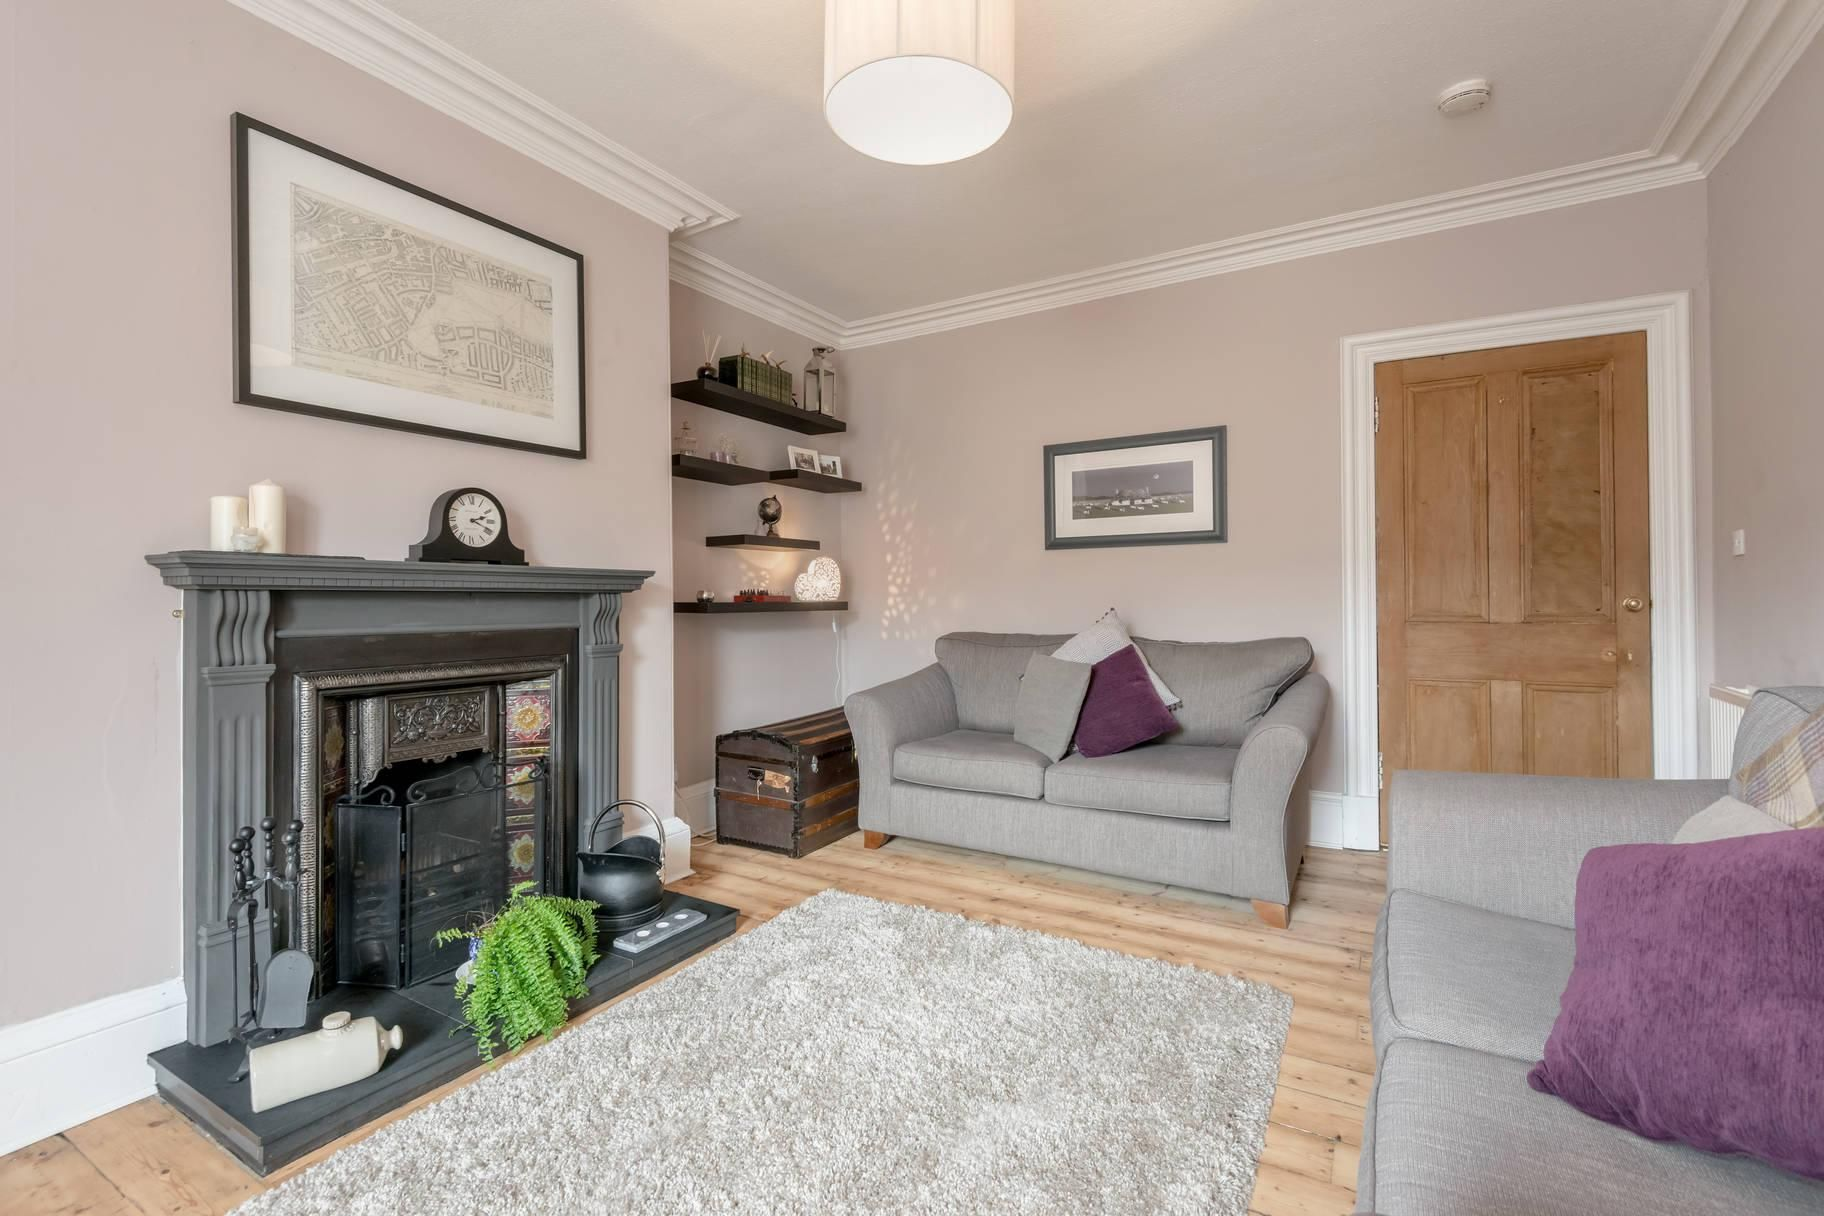 16/3 Strathearn Road, Marchmont - Photo 5